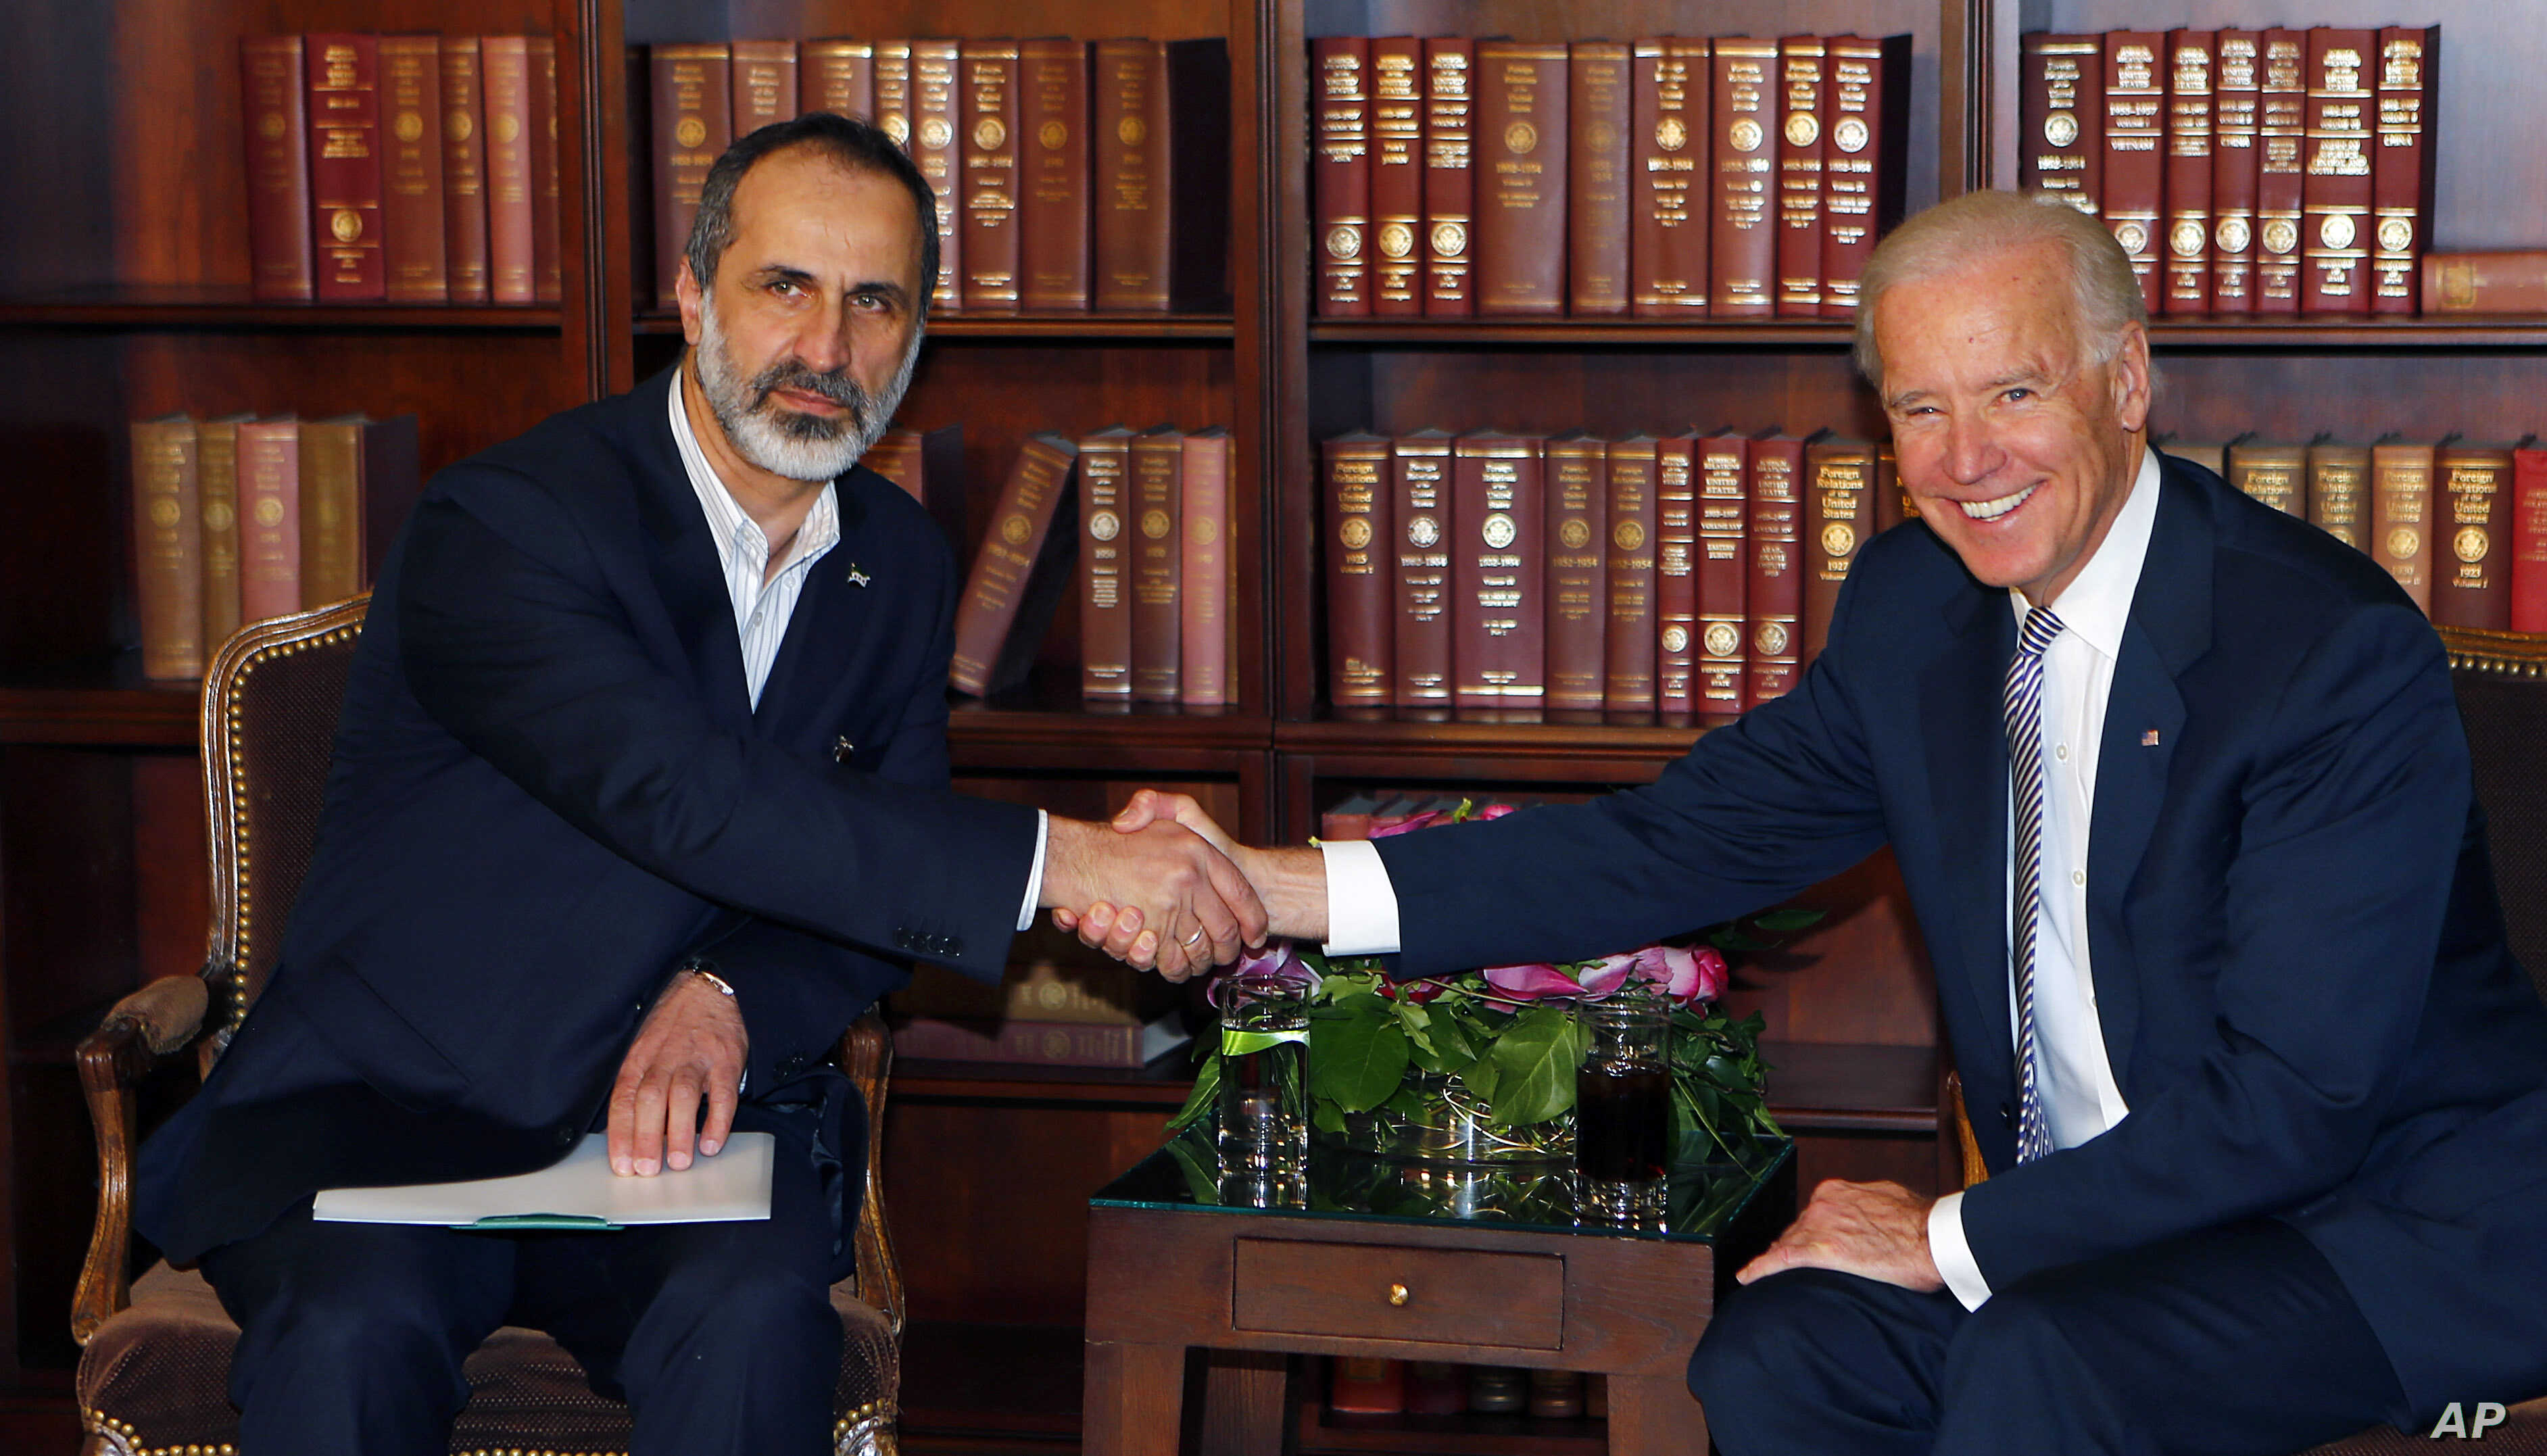 US Vice President Joe Biden, right, and Sheikh Moaz al-Khatib, Syria's  top opposition leader, shake hands at the Security Conference in Munich, Germany, February 2, 2013.